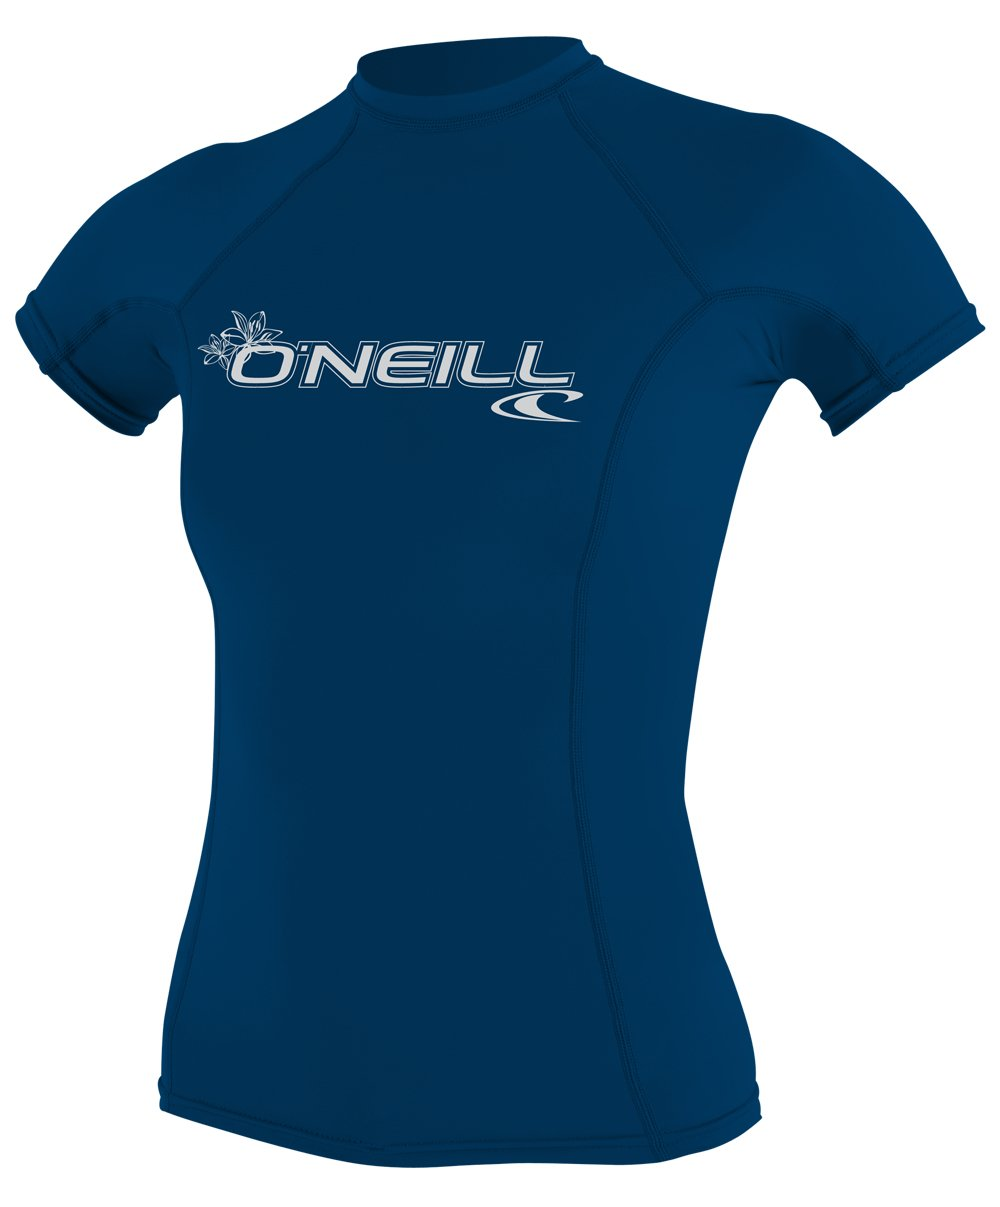 Deep Sea O'Neill Wetsuits UV Sun Predection Womens Basic Skins Short Sleeve Crew Sun Shirt Rash Guard